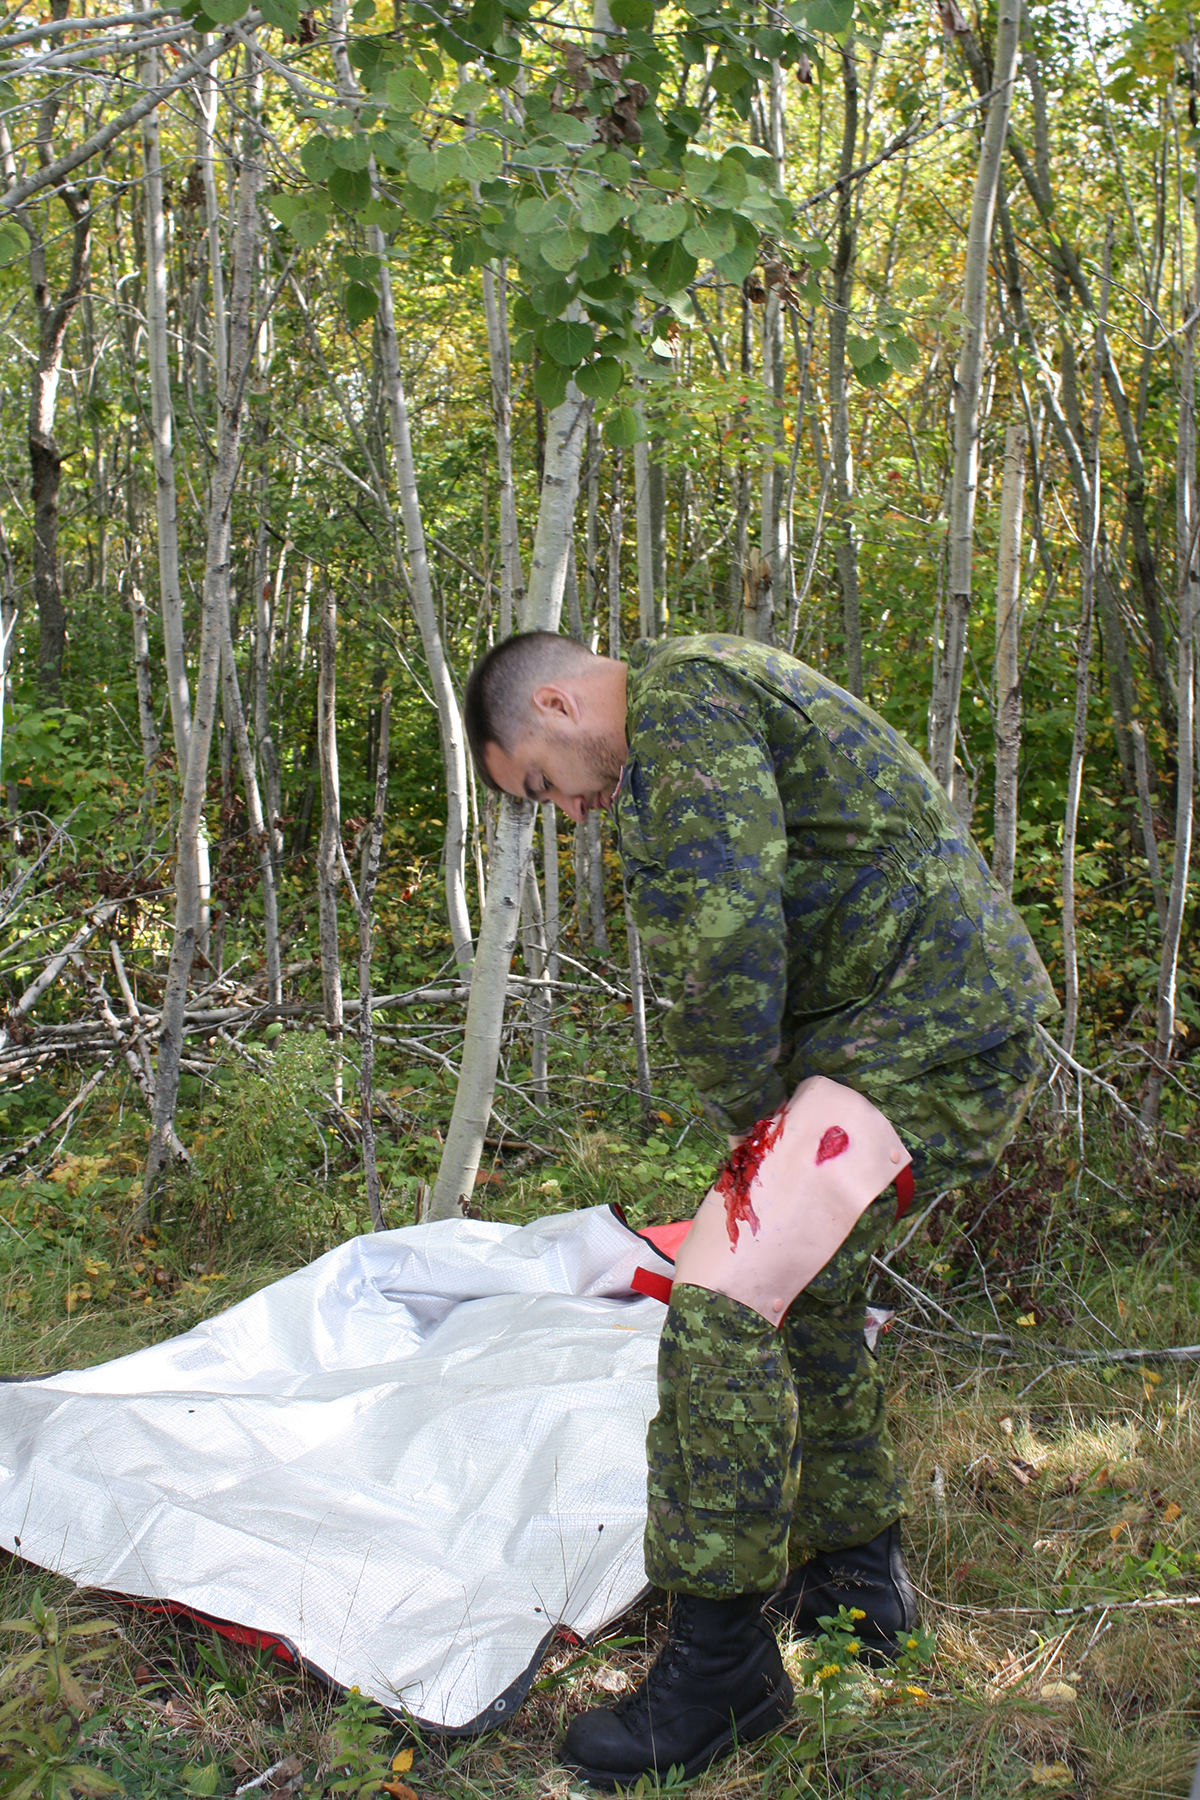 Volunteer victim Corporal Jean-Luc Germain ensures his simulated puncture wound is in place as the mass casualty exercise for 413 Transport and Rescue Squadron's search and rescue exercise gets underway on October 5, 2018. PHOTO: Sara White